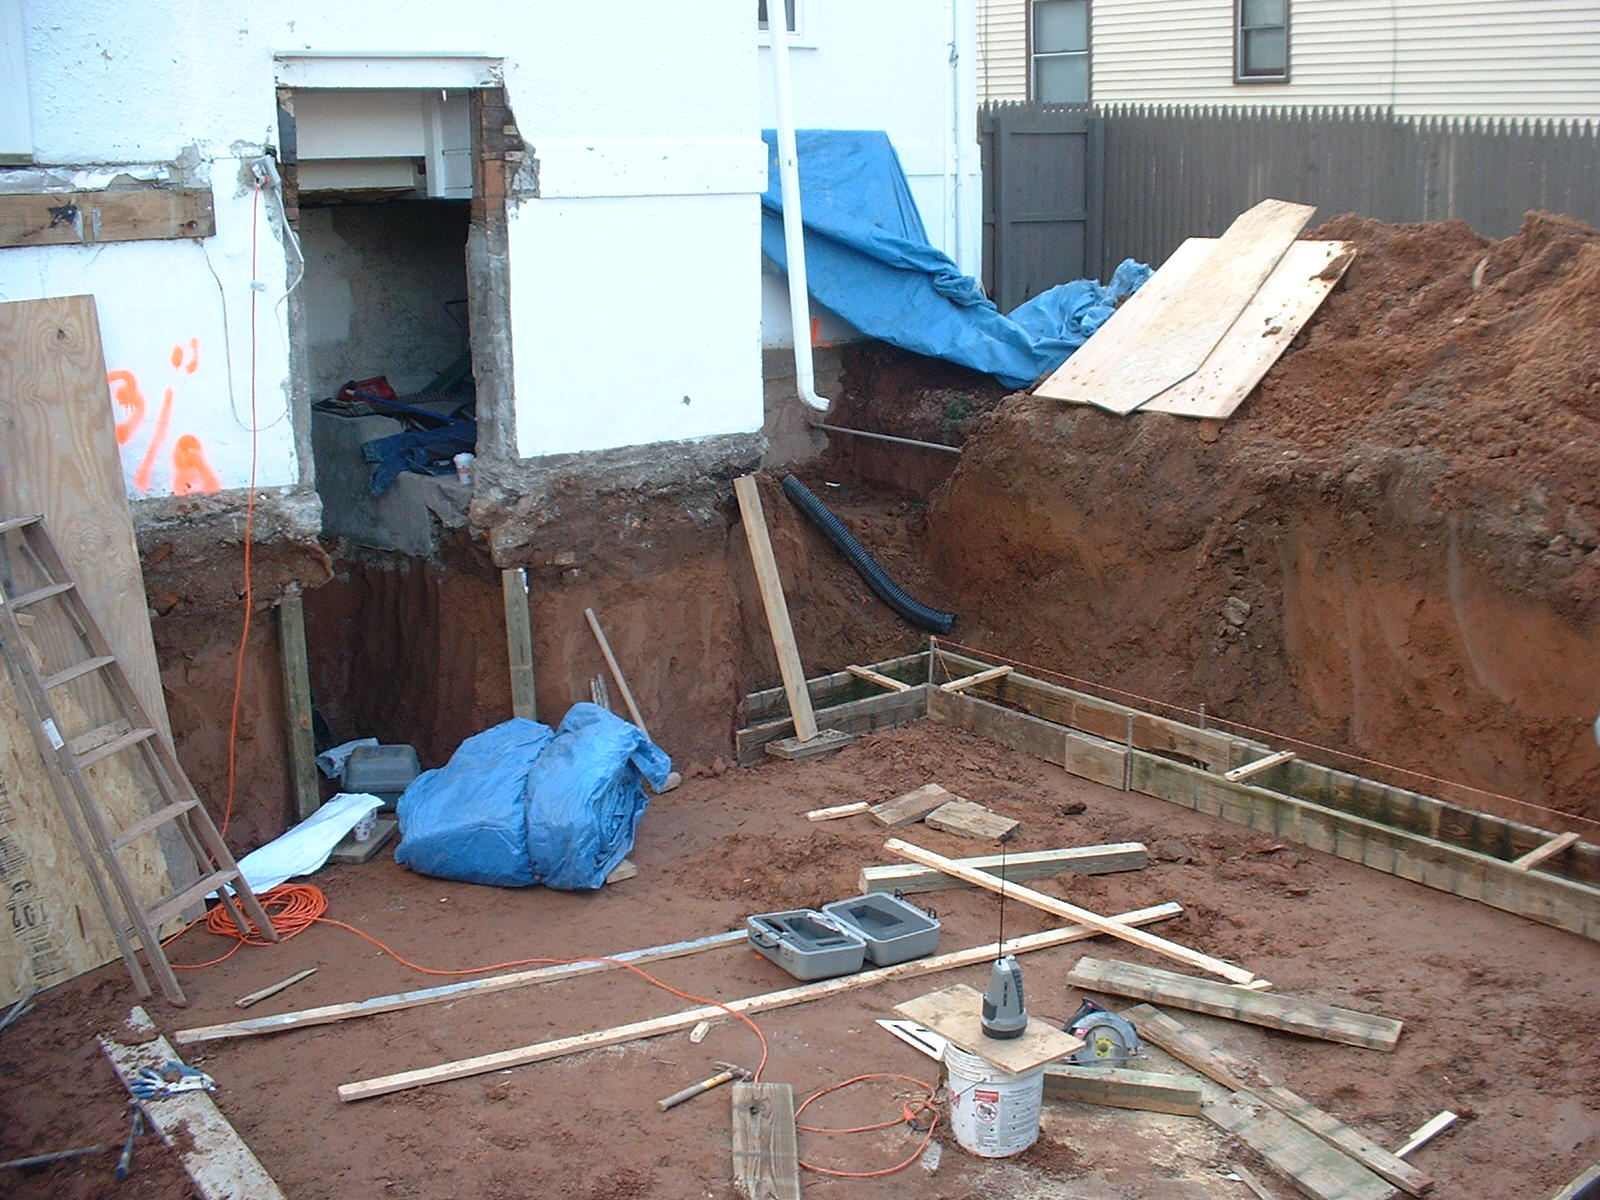 Here you can see the footings are being formed and the existing walls are braced to prevent the house from collapsing.